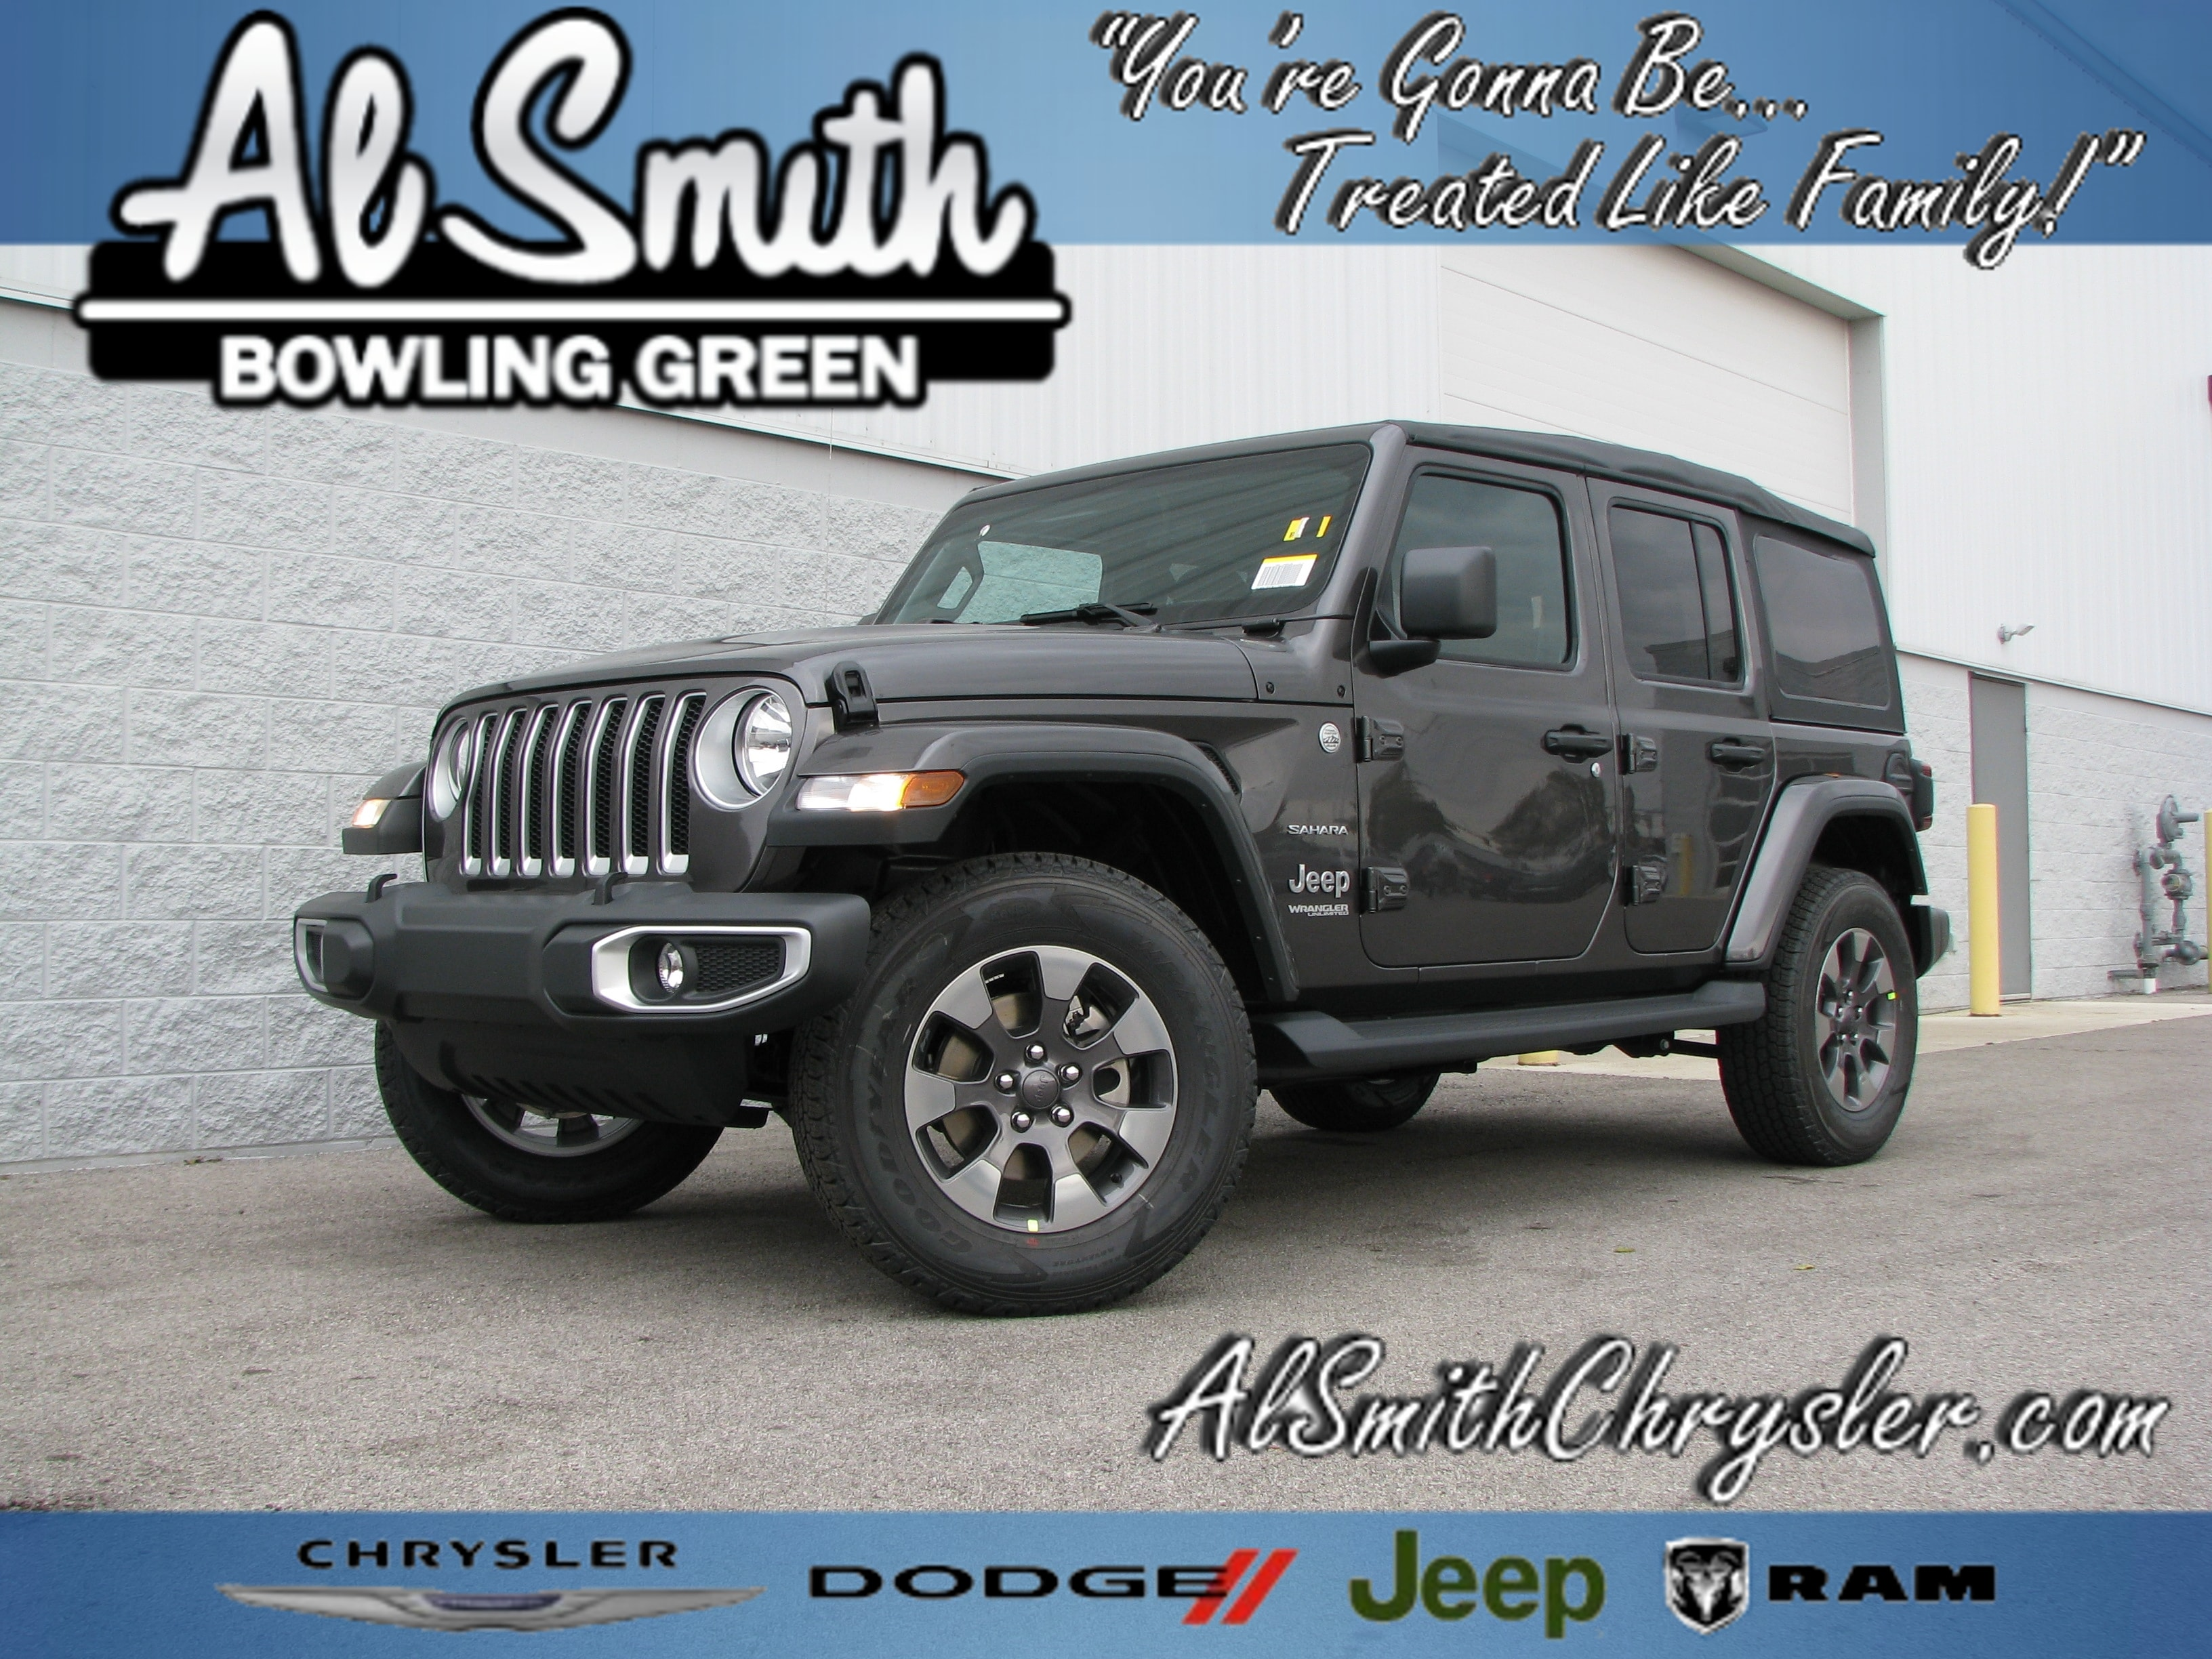 Jeep Model Research In Bowling Green Oh Al Smith Chrysler Dodge World War Ii Trailer Before Retored To Usmc Wwii Standards 2018 Wrangler Sport Utility